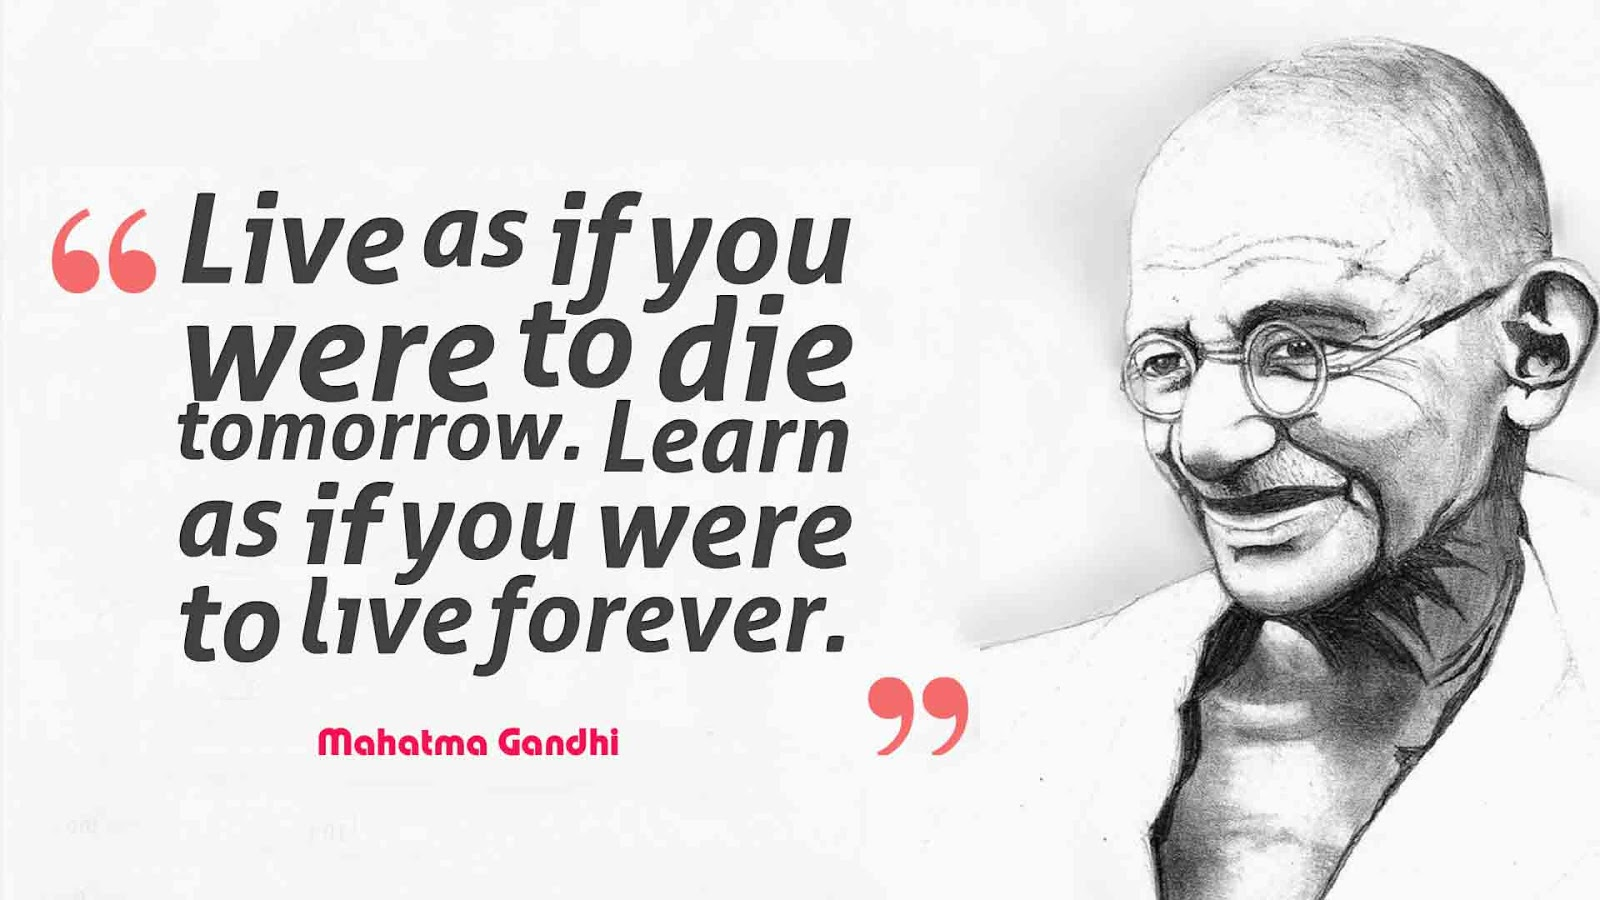 essay on gandhi mahatma gandhi essay in hindi words essay topics gandhi jayanti whatsapp facebook status in essays